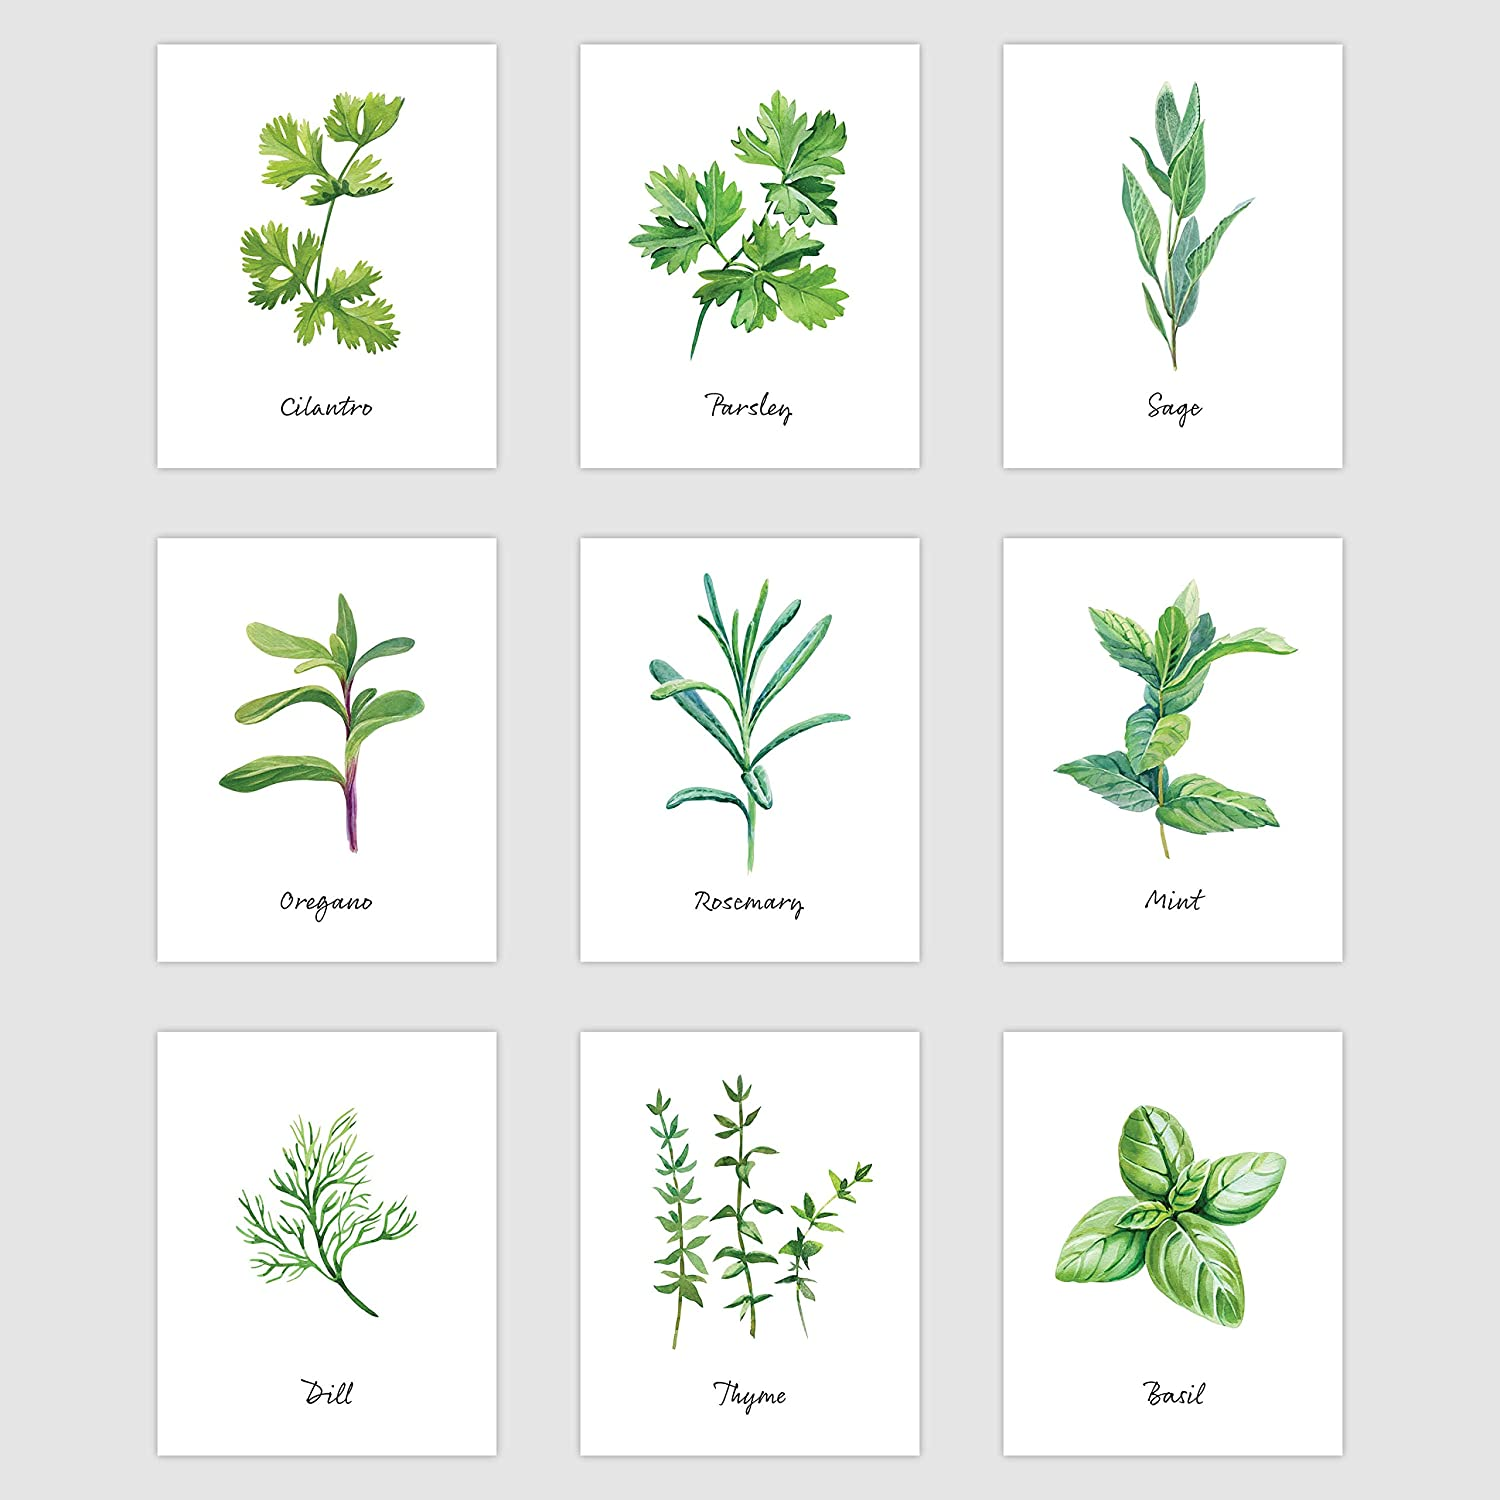 """Palace Learning Kitchen Herb Botanical Prints - Wall Art Decor - Set of 9 Prints (8"""" x 10"""", Unframed Paper Cardstock)"""